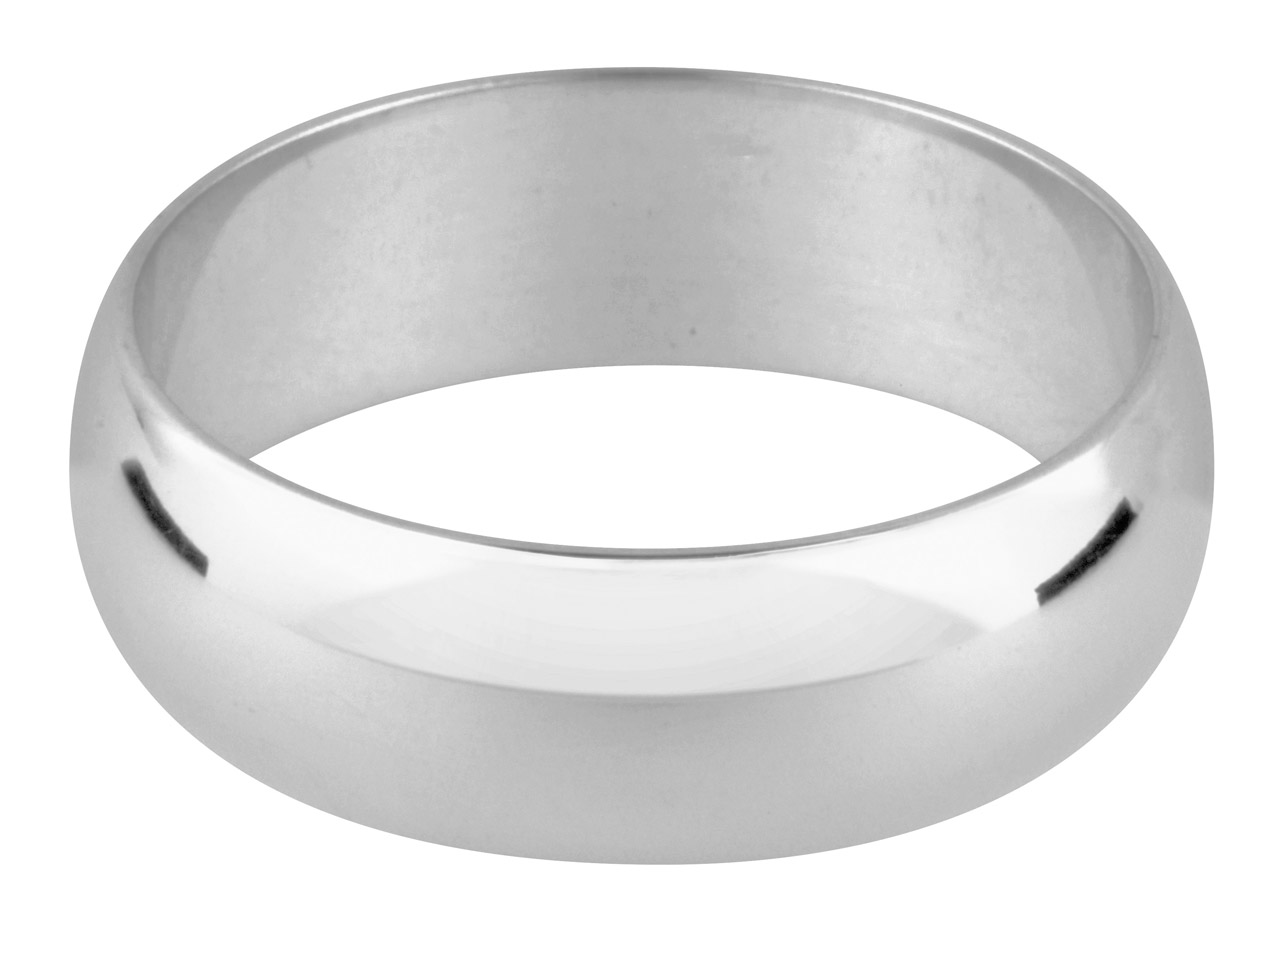 Silver D Shape Wedding Ring 4.0mm J 3.8gms Heavy Weight Hallmarked Wall Thickness 1.83mm